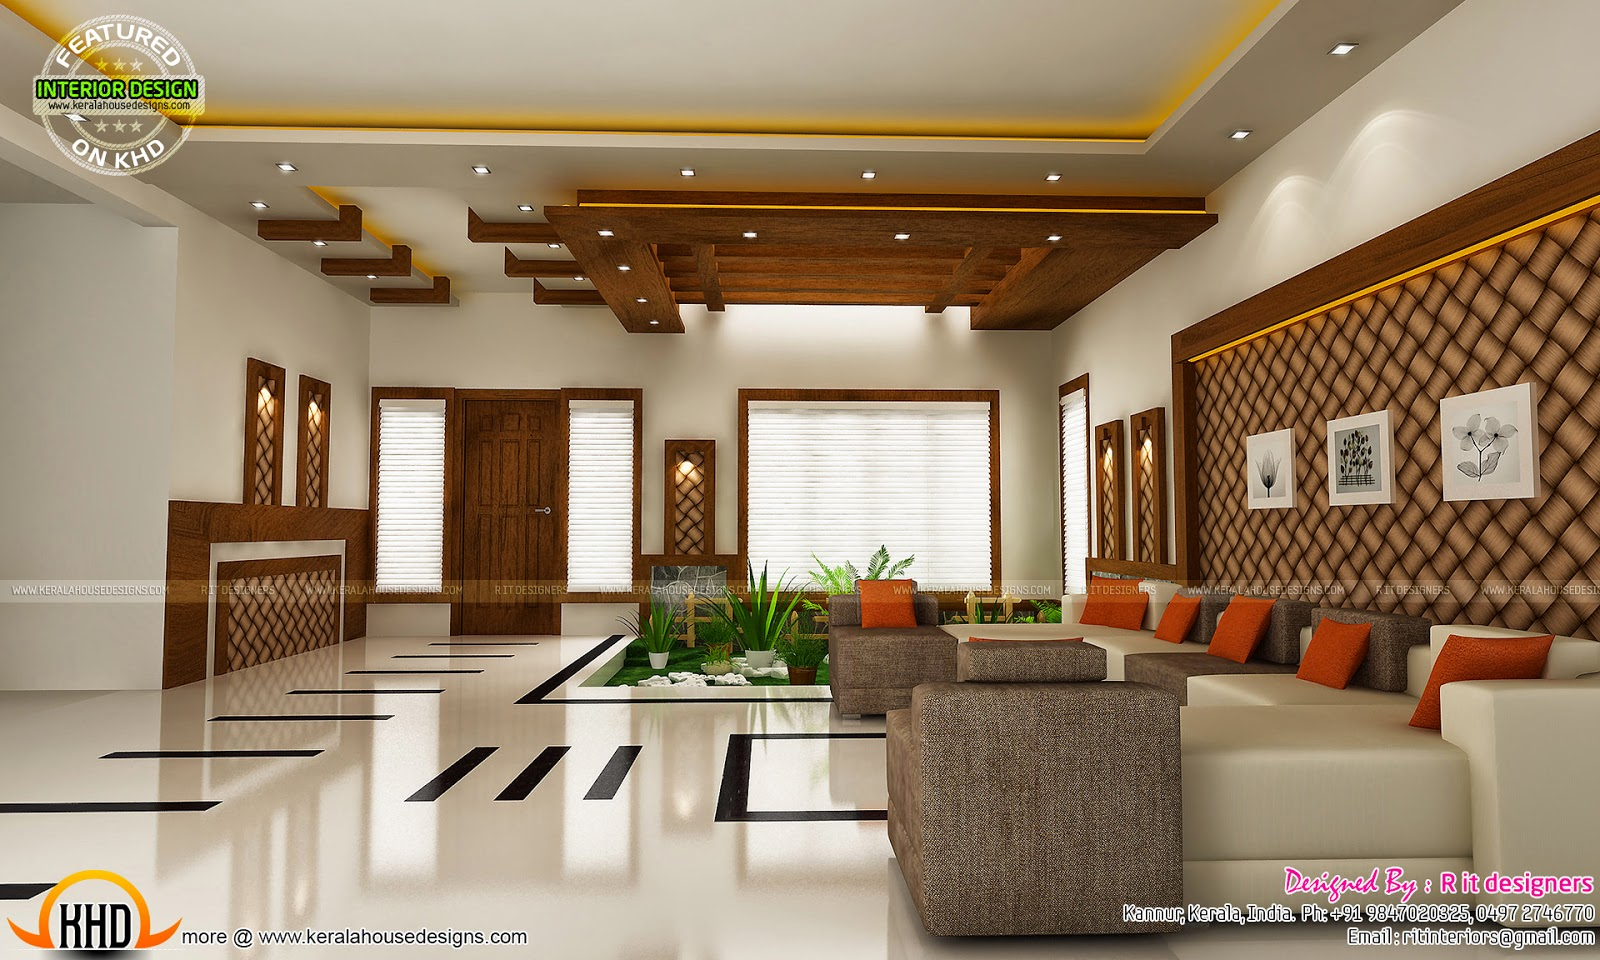 Modern and unique dining kitchen interior kerala home for House design interior decorating